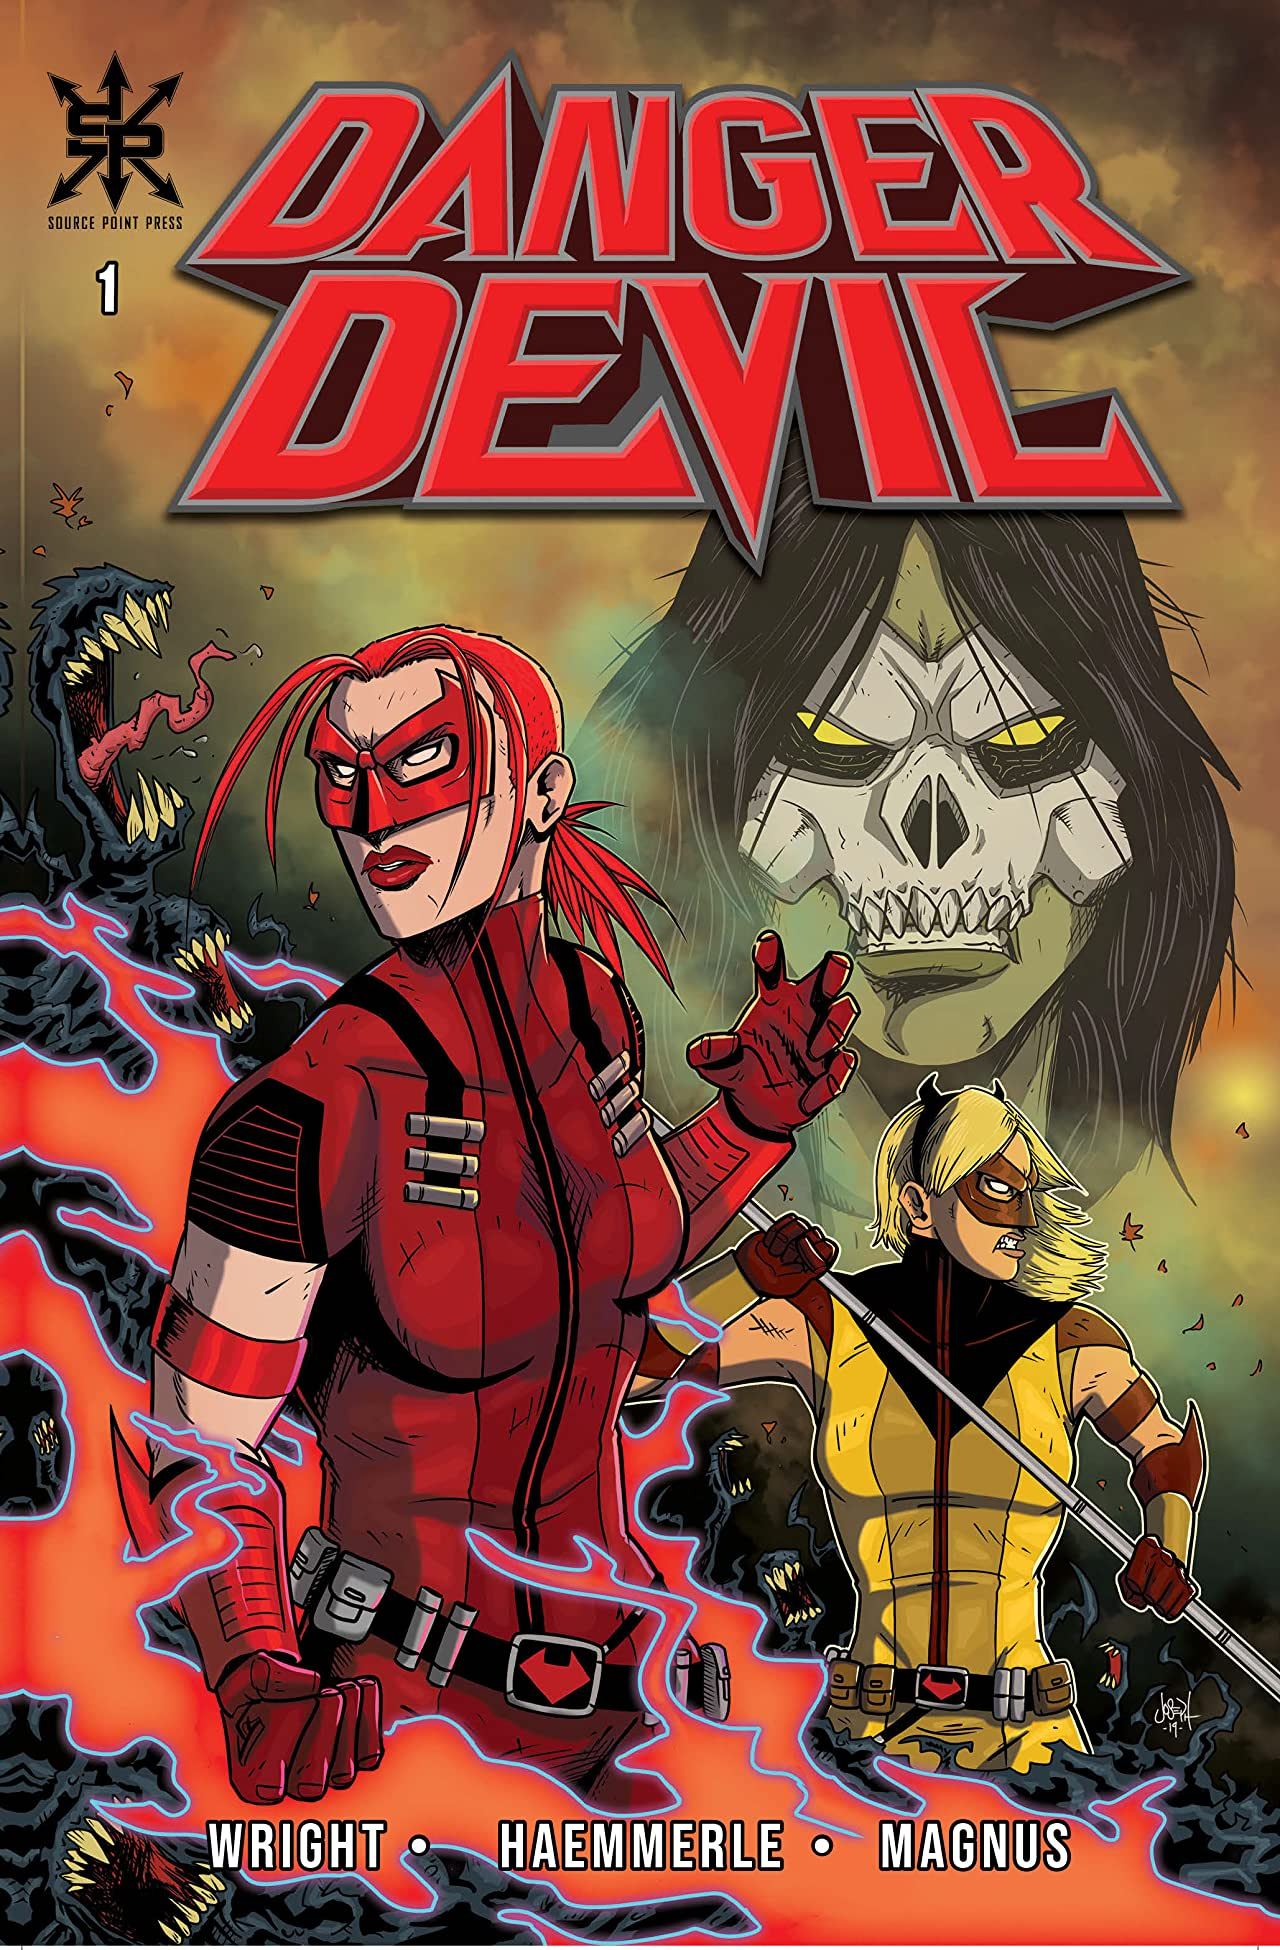 Danger Devil #1